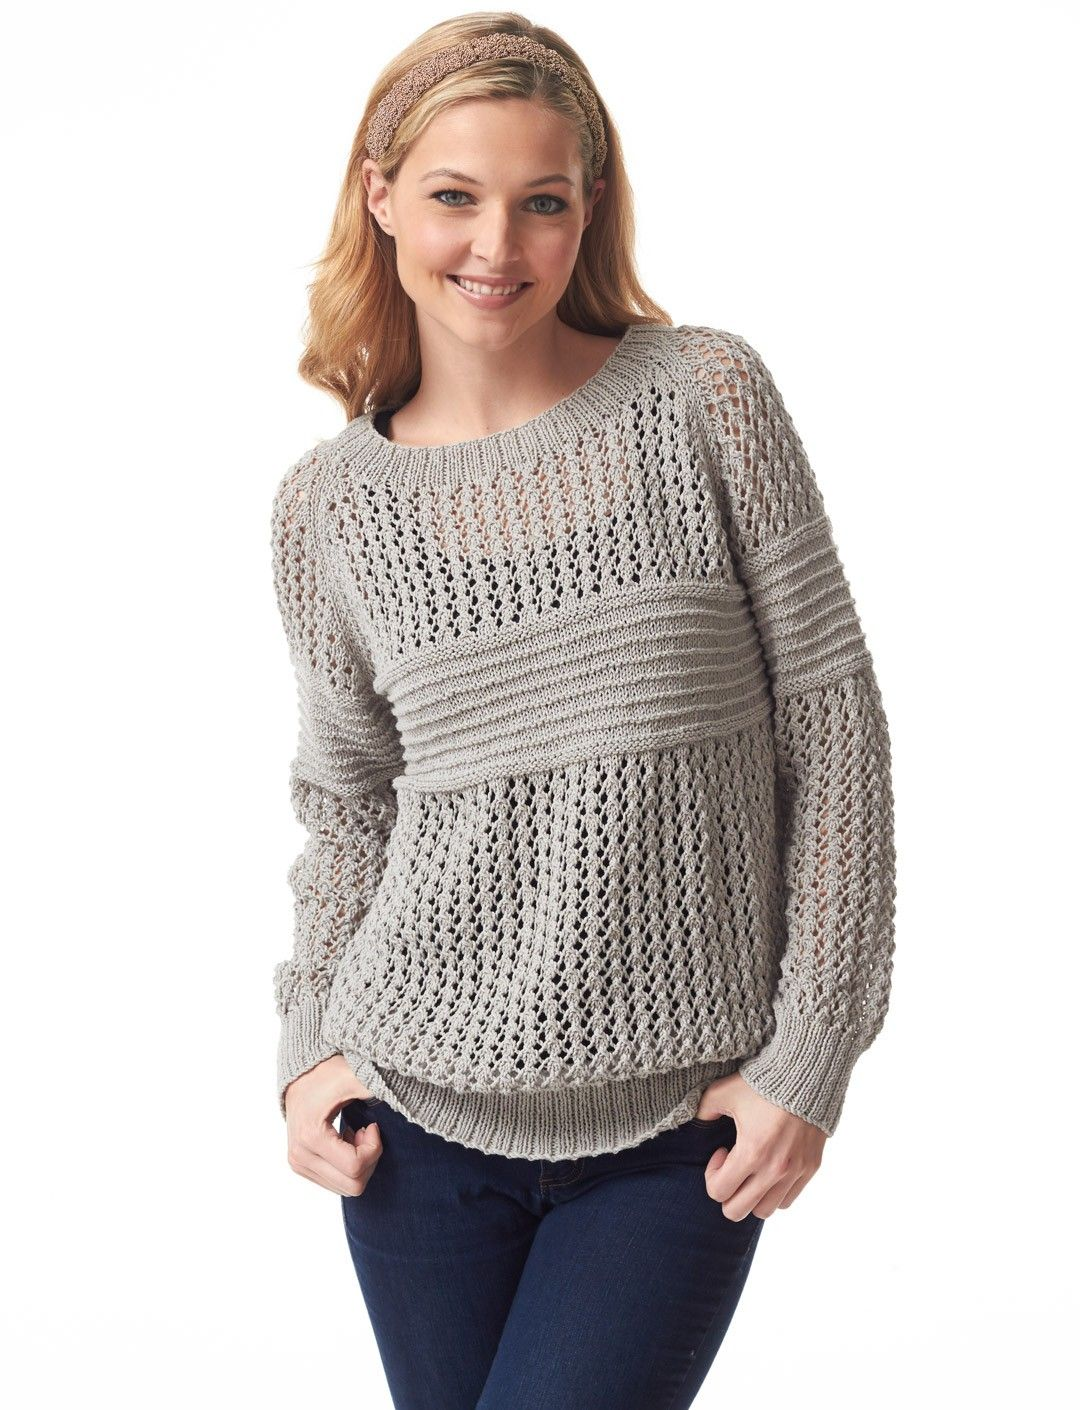 Lace pullover free knitting patterns social networks pullover lace pullover free knitting patterns bankloansurffo Gallery